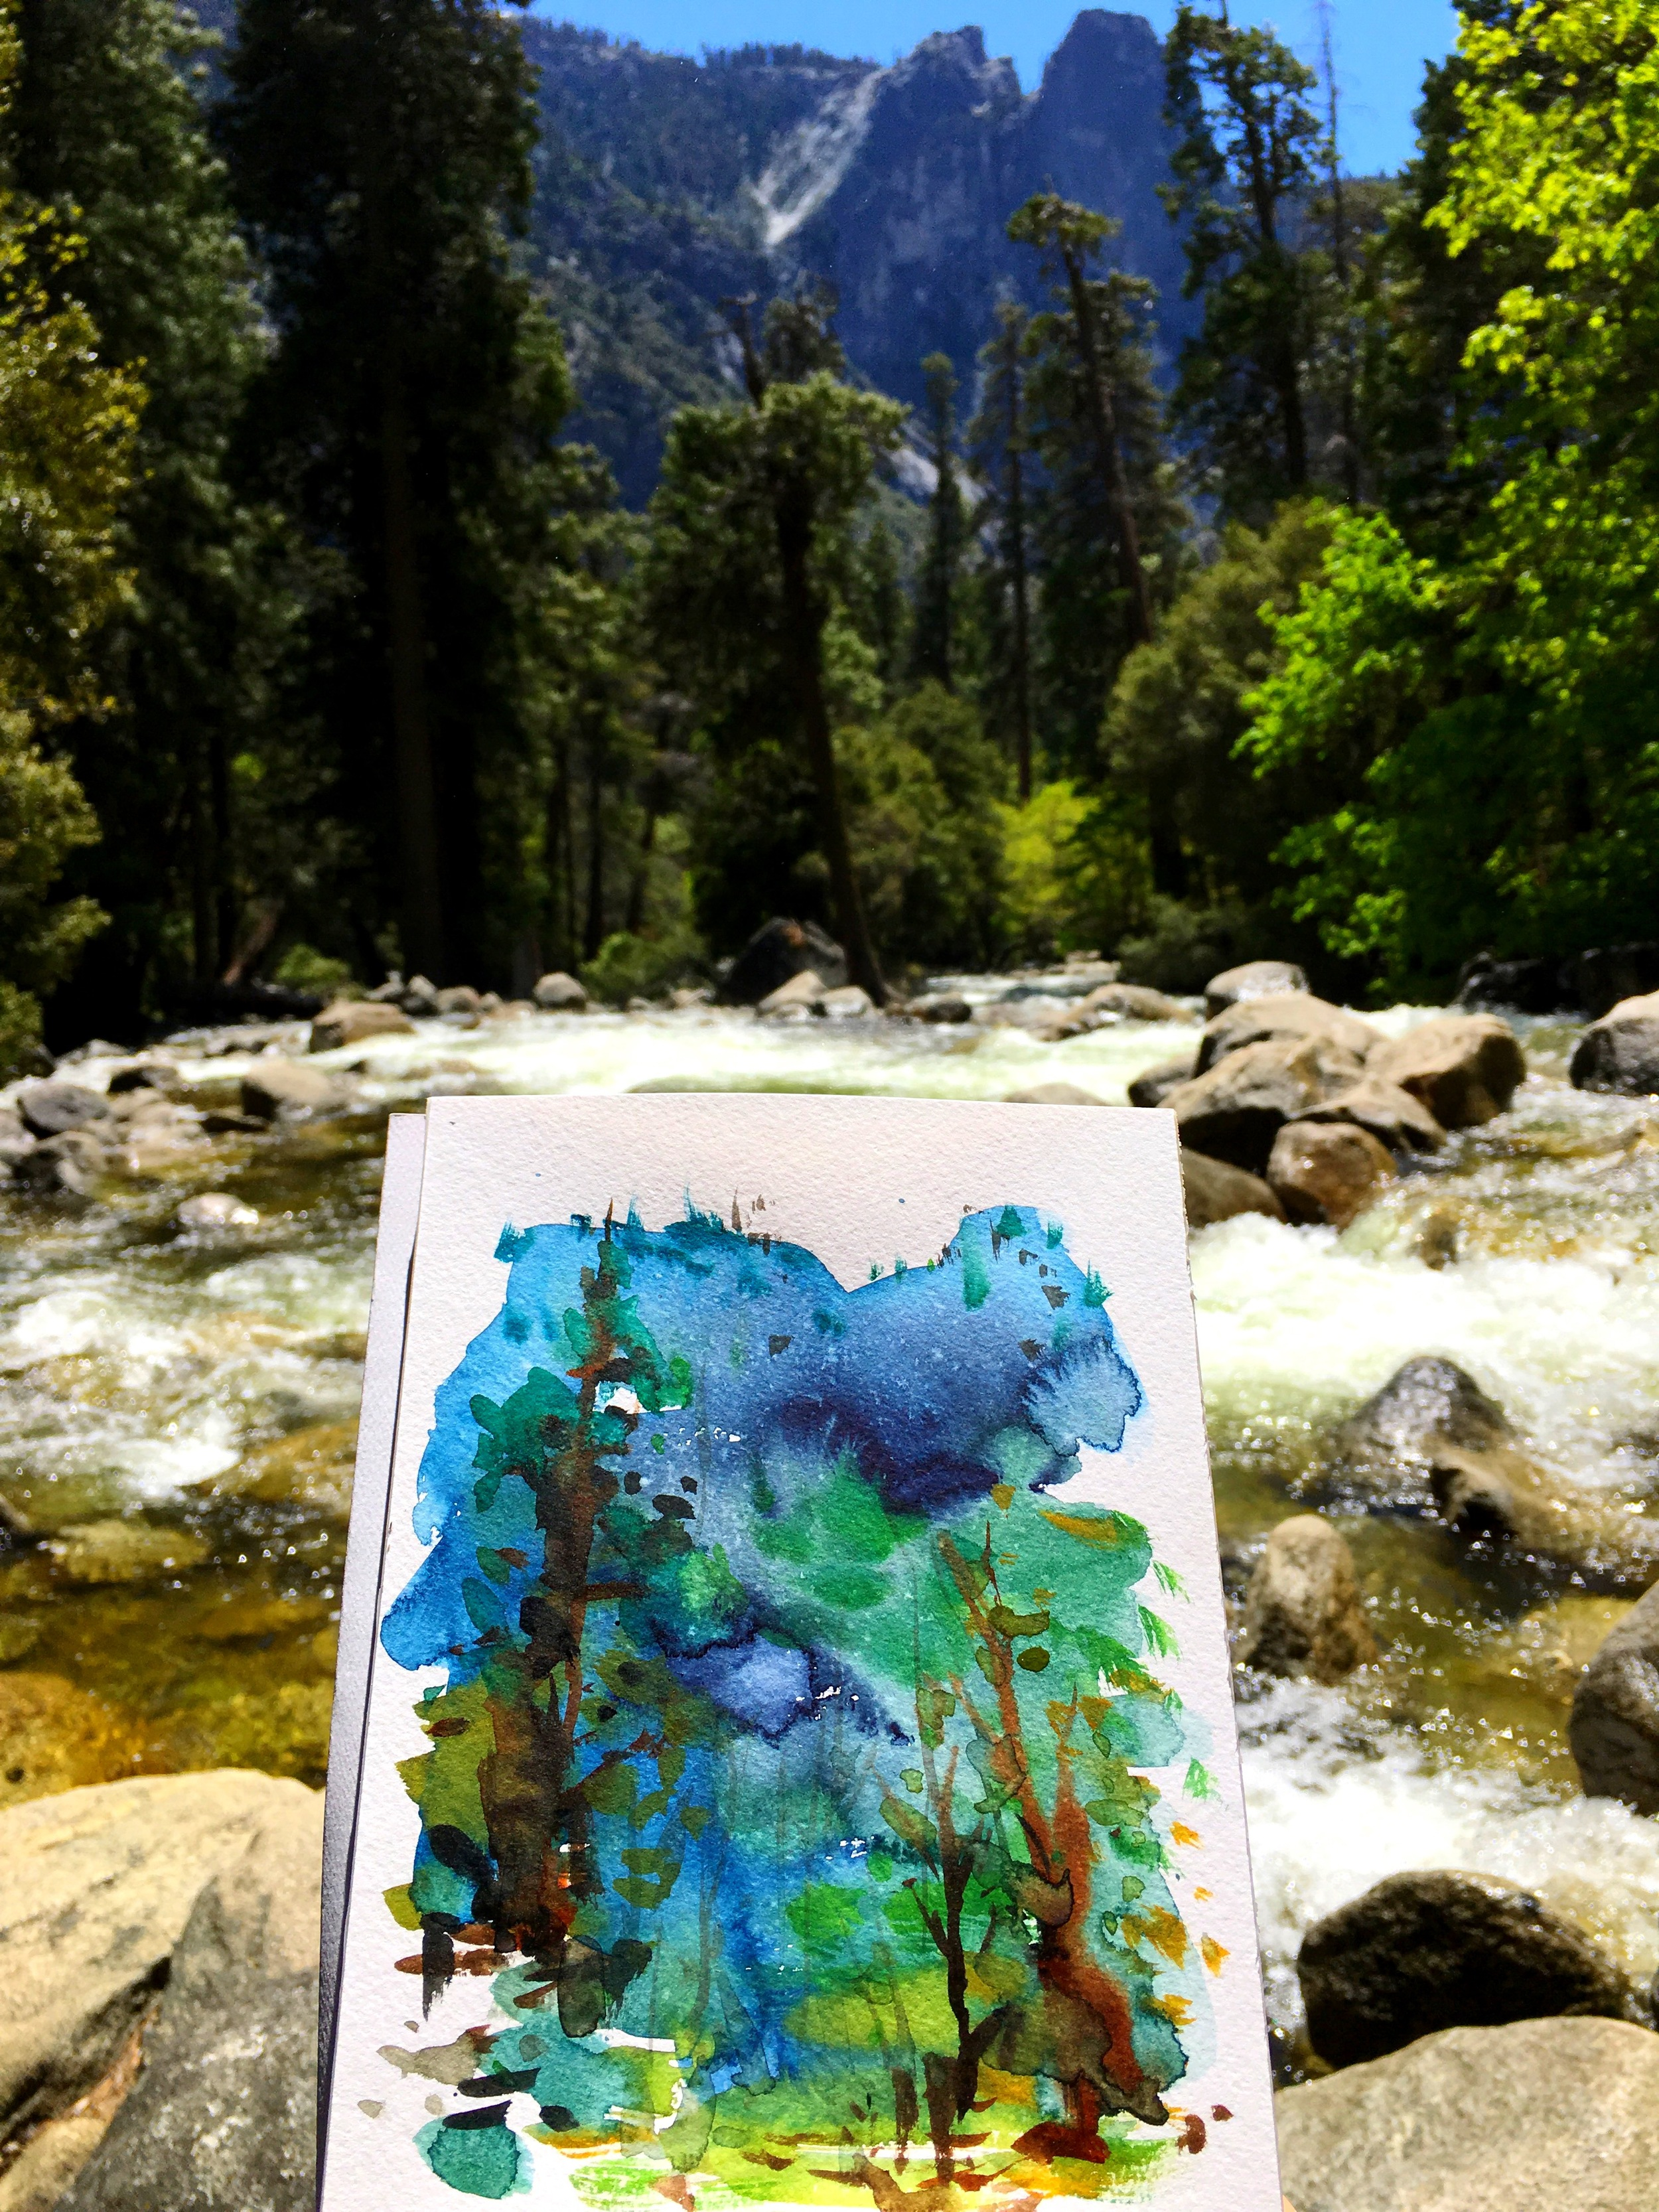 [Day30 of 100] Painted at Yosemite